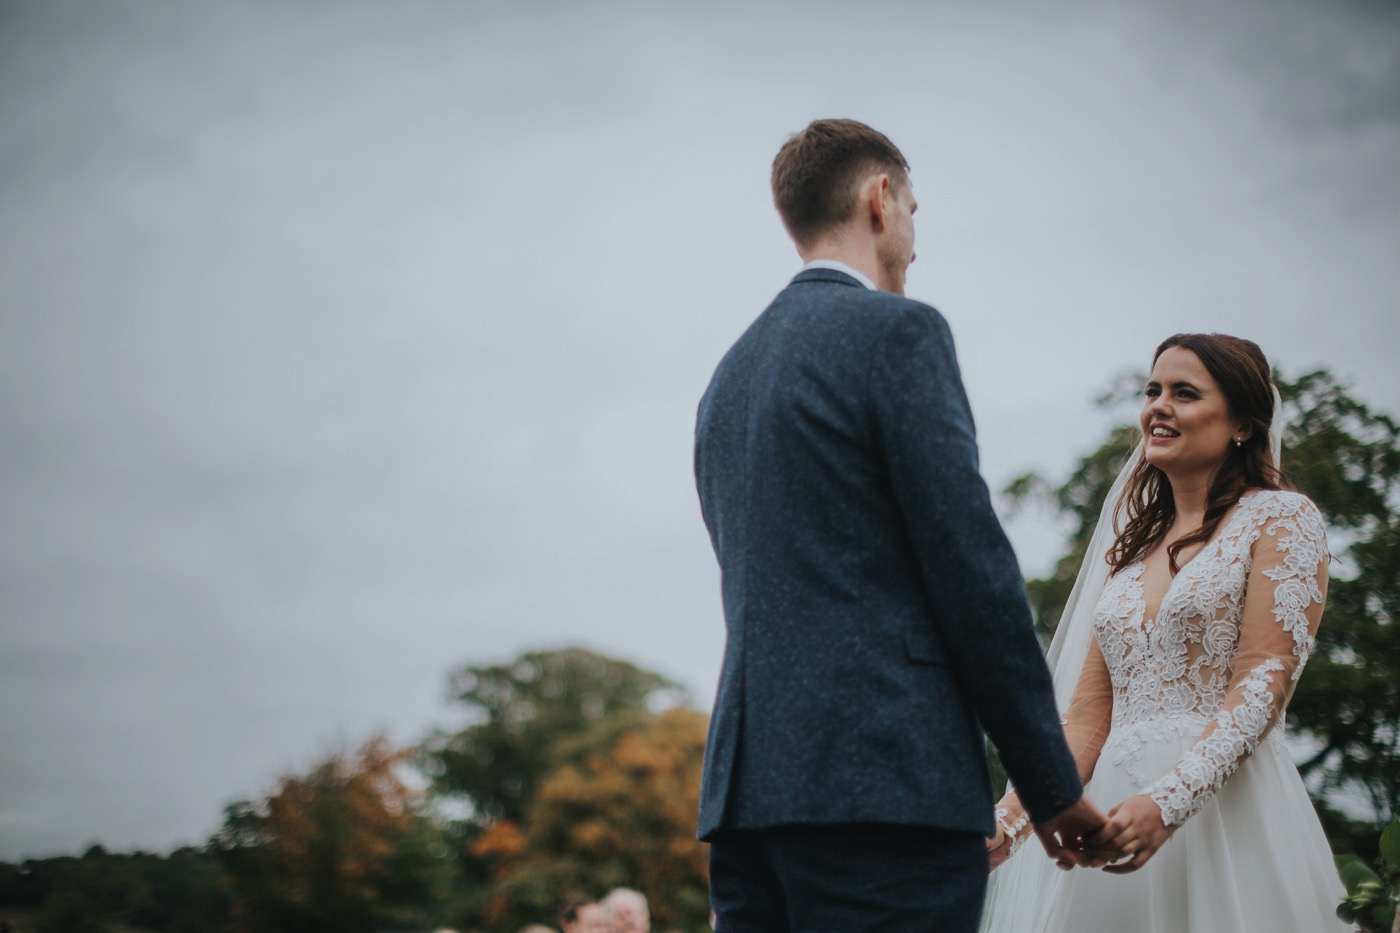 Steve & Tiffany | Bradgate Park wedding 59